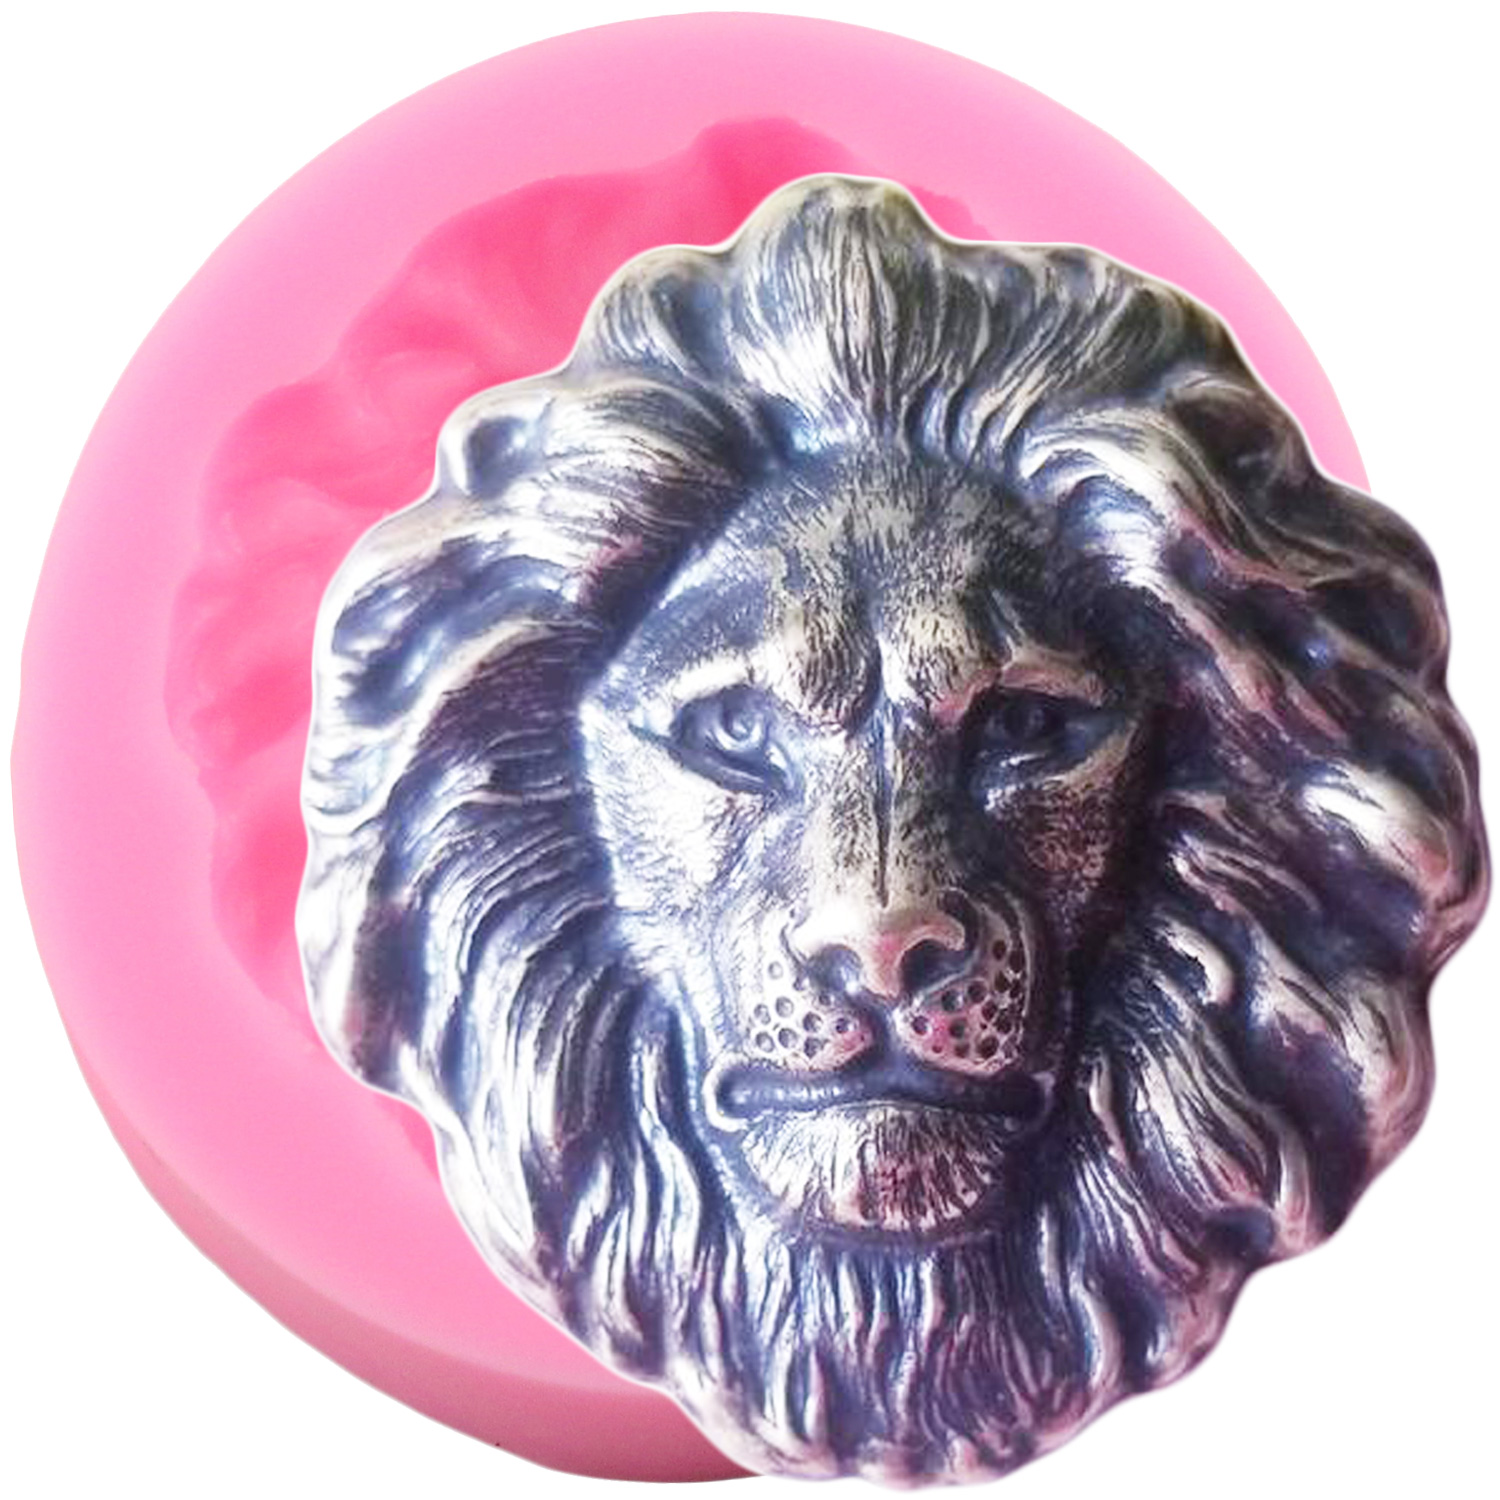 3D Lion Head Silicone Molds Animals Chocolate Candy Fondant Mold  DIY Part Fondant Cake Decorating Tools Resin Clay Soap Moulds